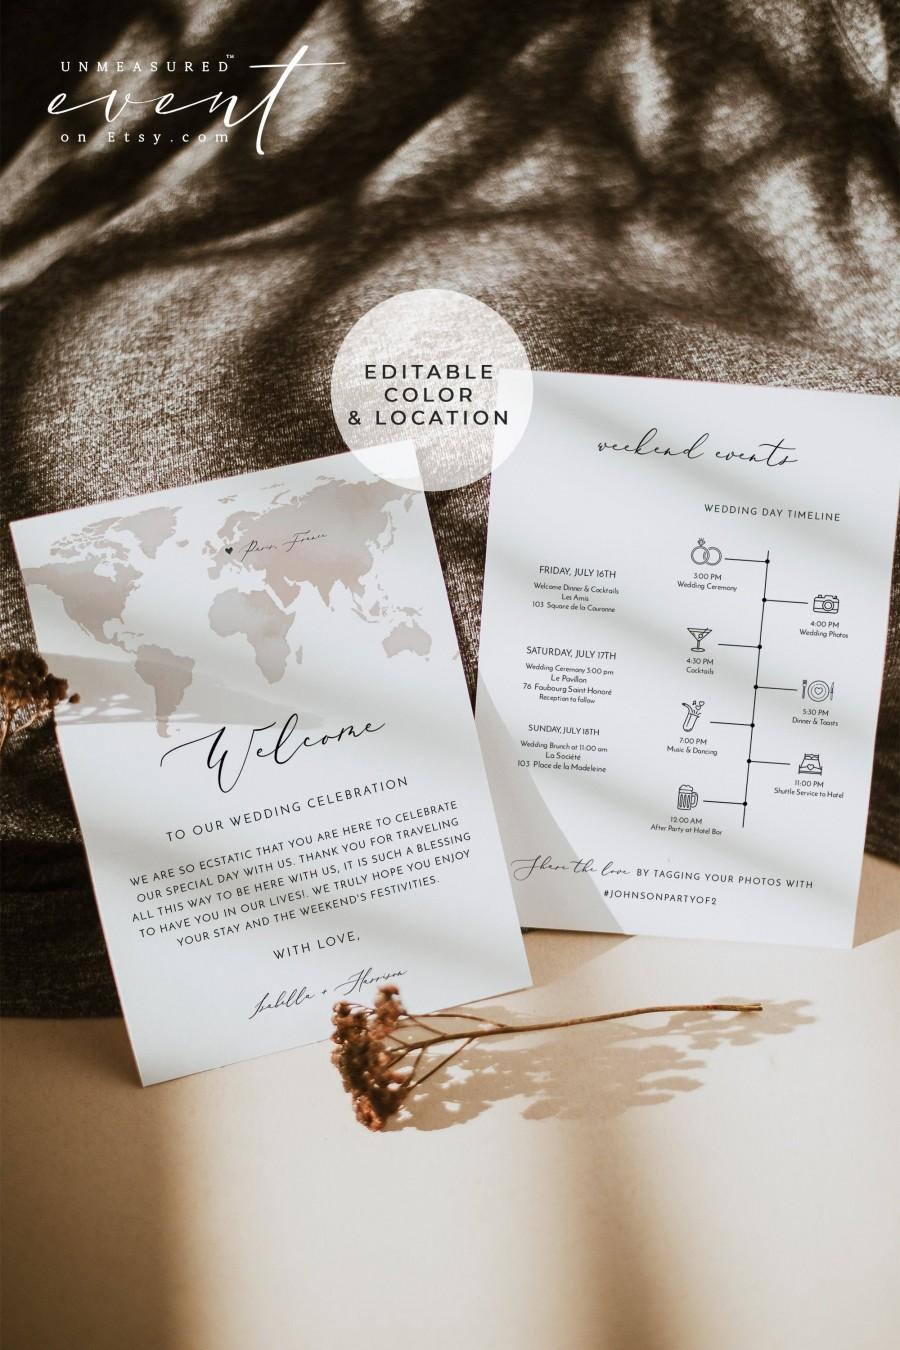 Wedding - CARMEN Destination Wedding Welcome Letter and Itinerary Template, Destination Welcome Card, Passport Wedding Timeline, Instant Download